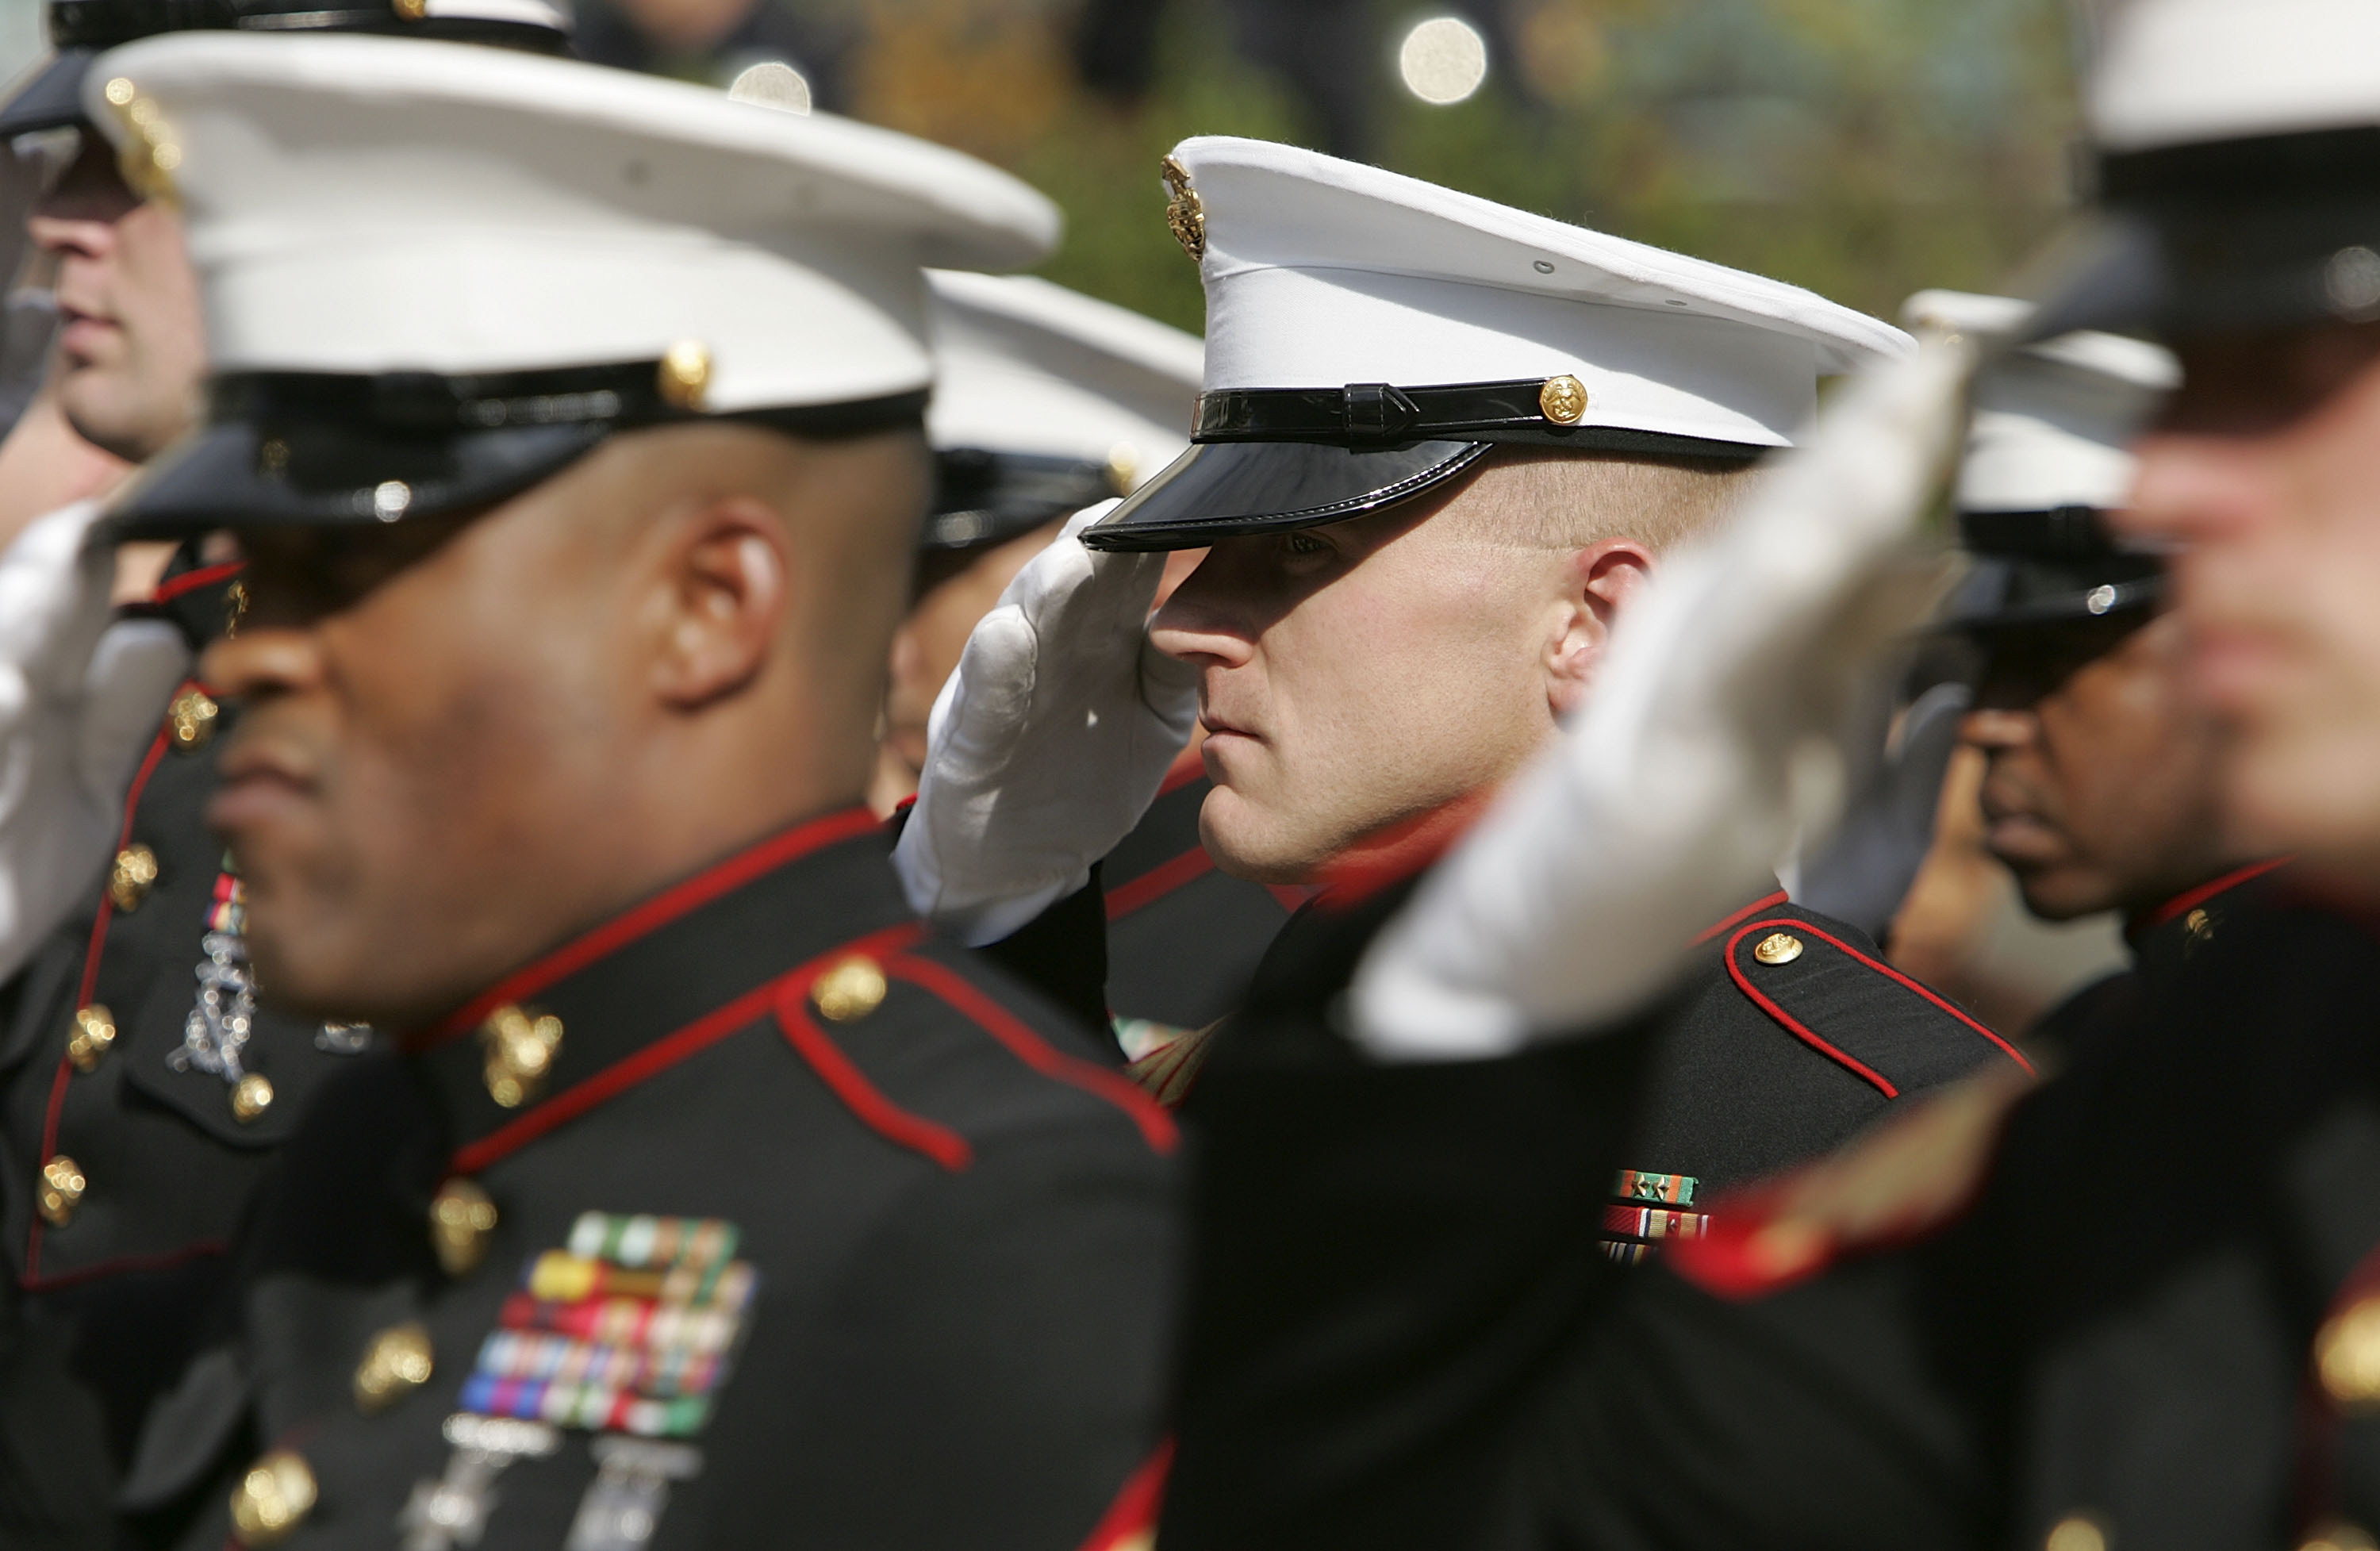 SAN FRANCISCO - NOVEMBER 10:  Members of the U.S. Marine Corp honor guard salute during the singing of the National Anthem during the unveiling ceremony for the new  Distinguished Marines  commemorative stamps November 10, 2005 in San Francisco, California. The U.S. Postal Service issued a commemorative stamp series called  Distinguished Marines.  on the 230th birthday of the U.S. Marine Corp. The four-stamp series features images of U.S. Marines Lewis B. Puller, Daniel J. Daly, John Basilone and John A. Lejeune.  (Photo by Justin Sullivan/Getty Images)